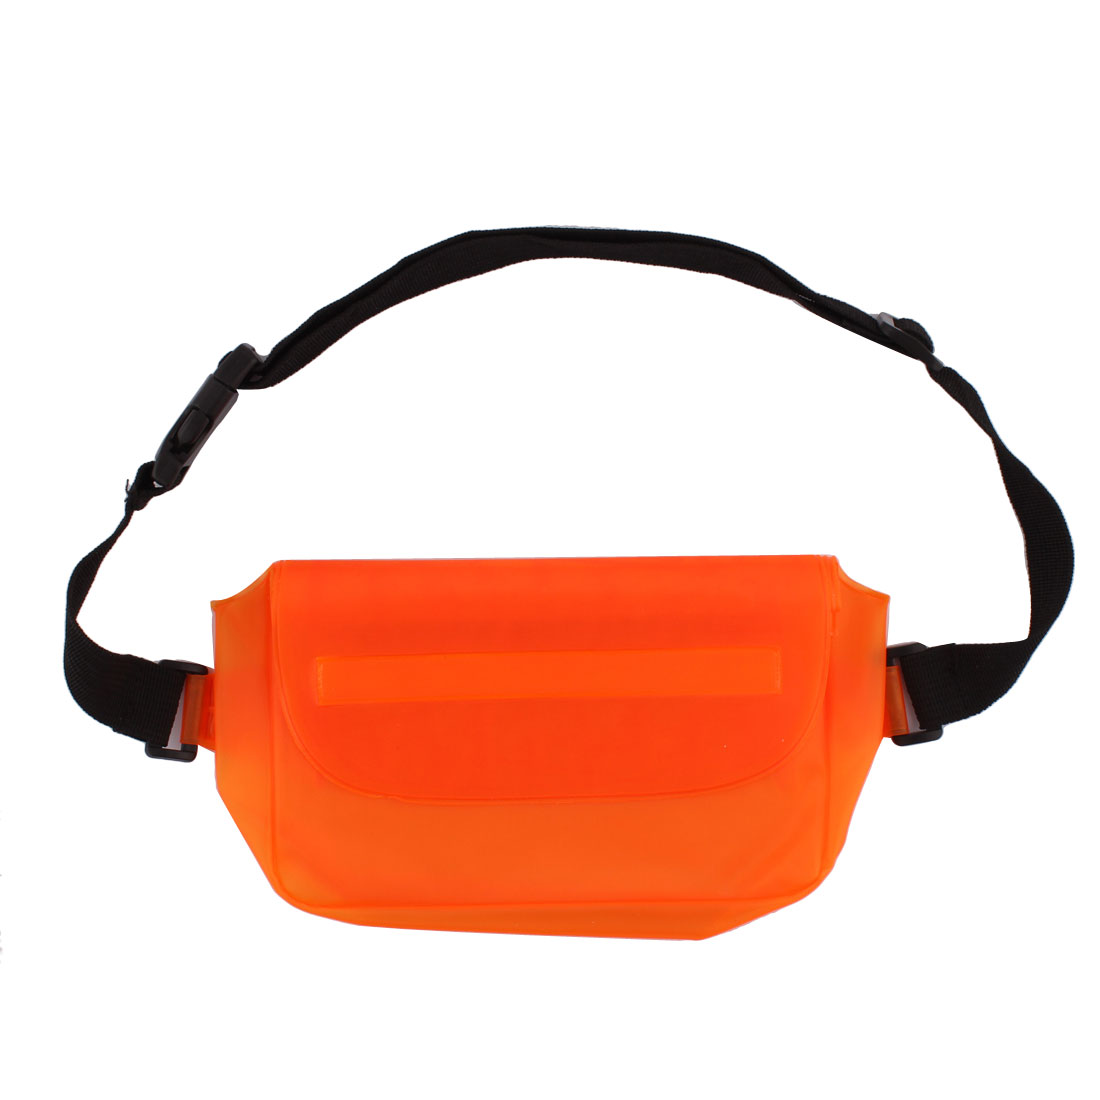 PVC Water Resistant Waist Pack Bag Pocket Cellphone Container Orange